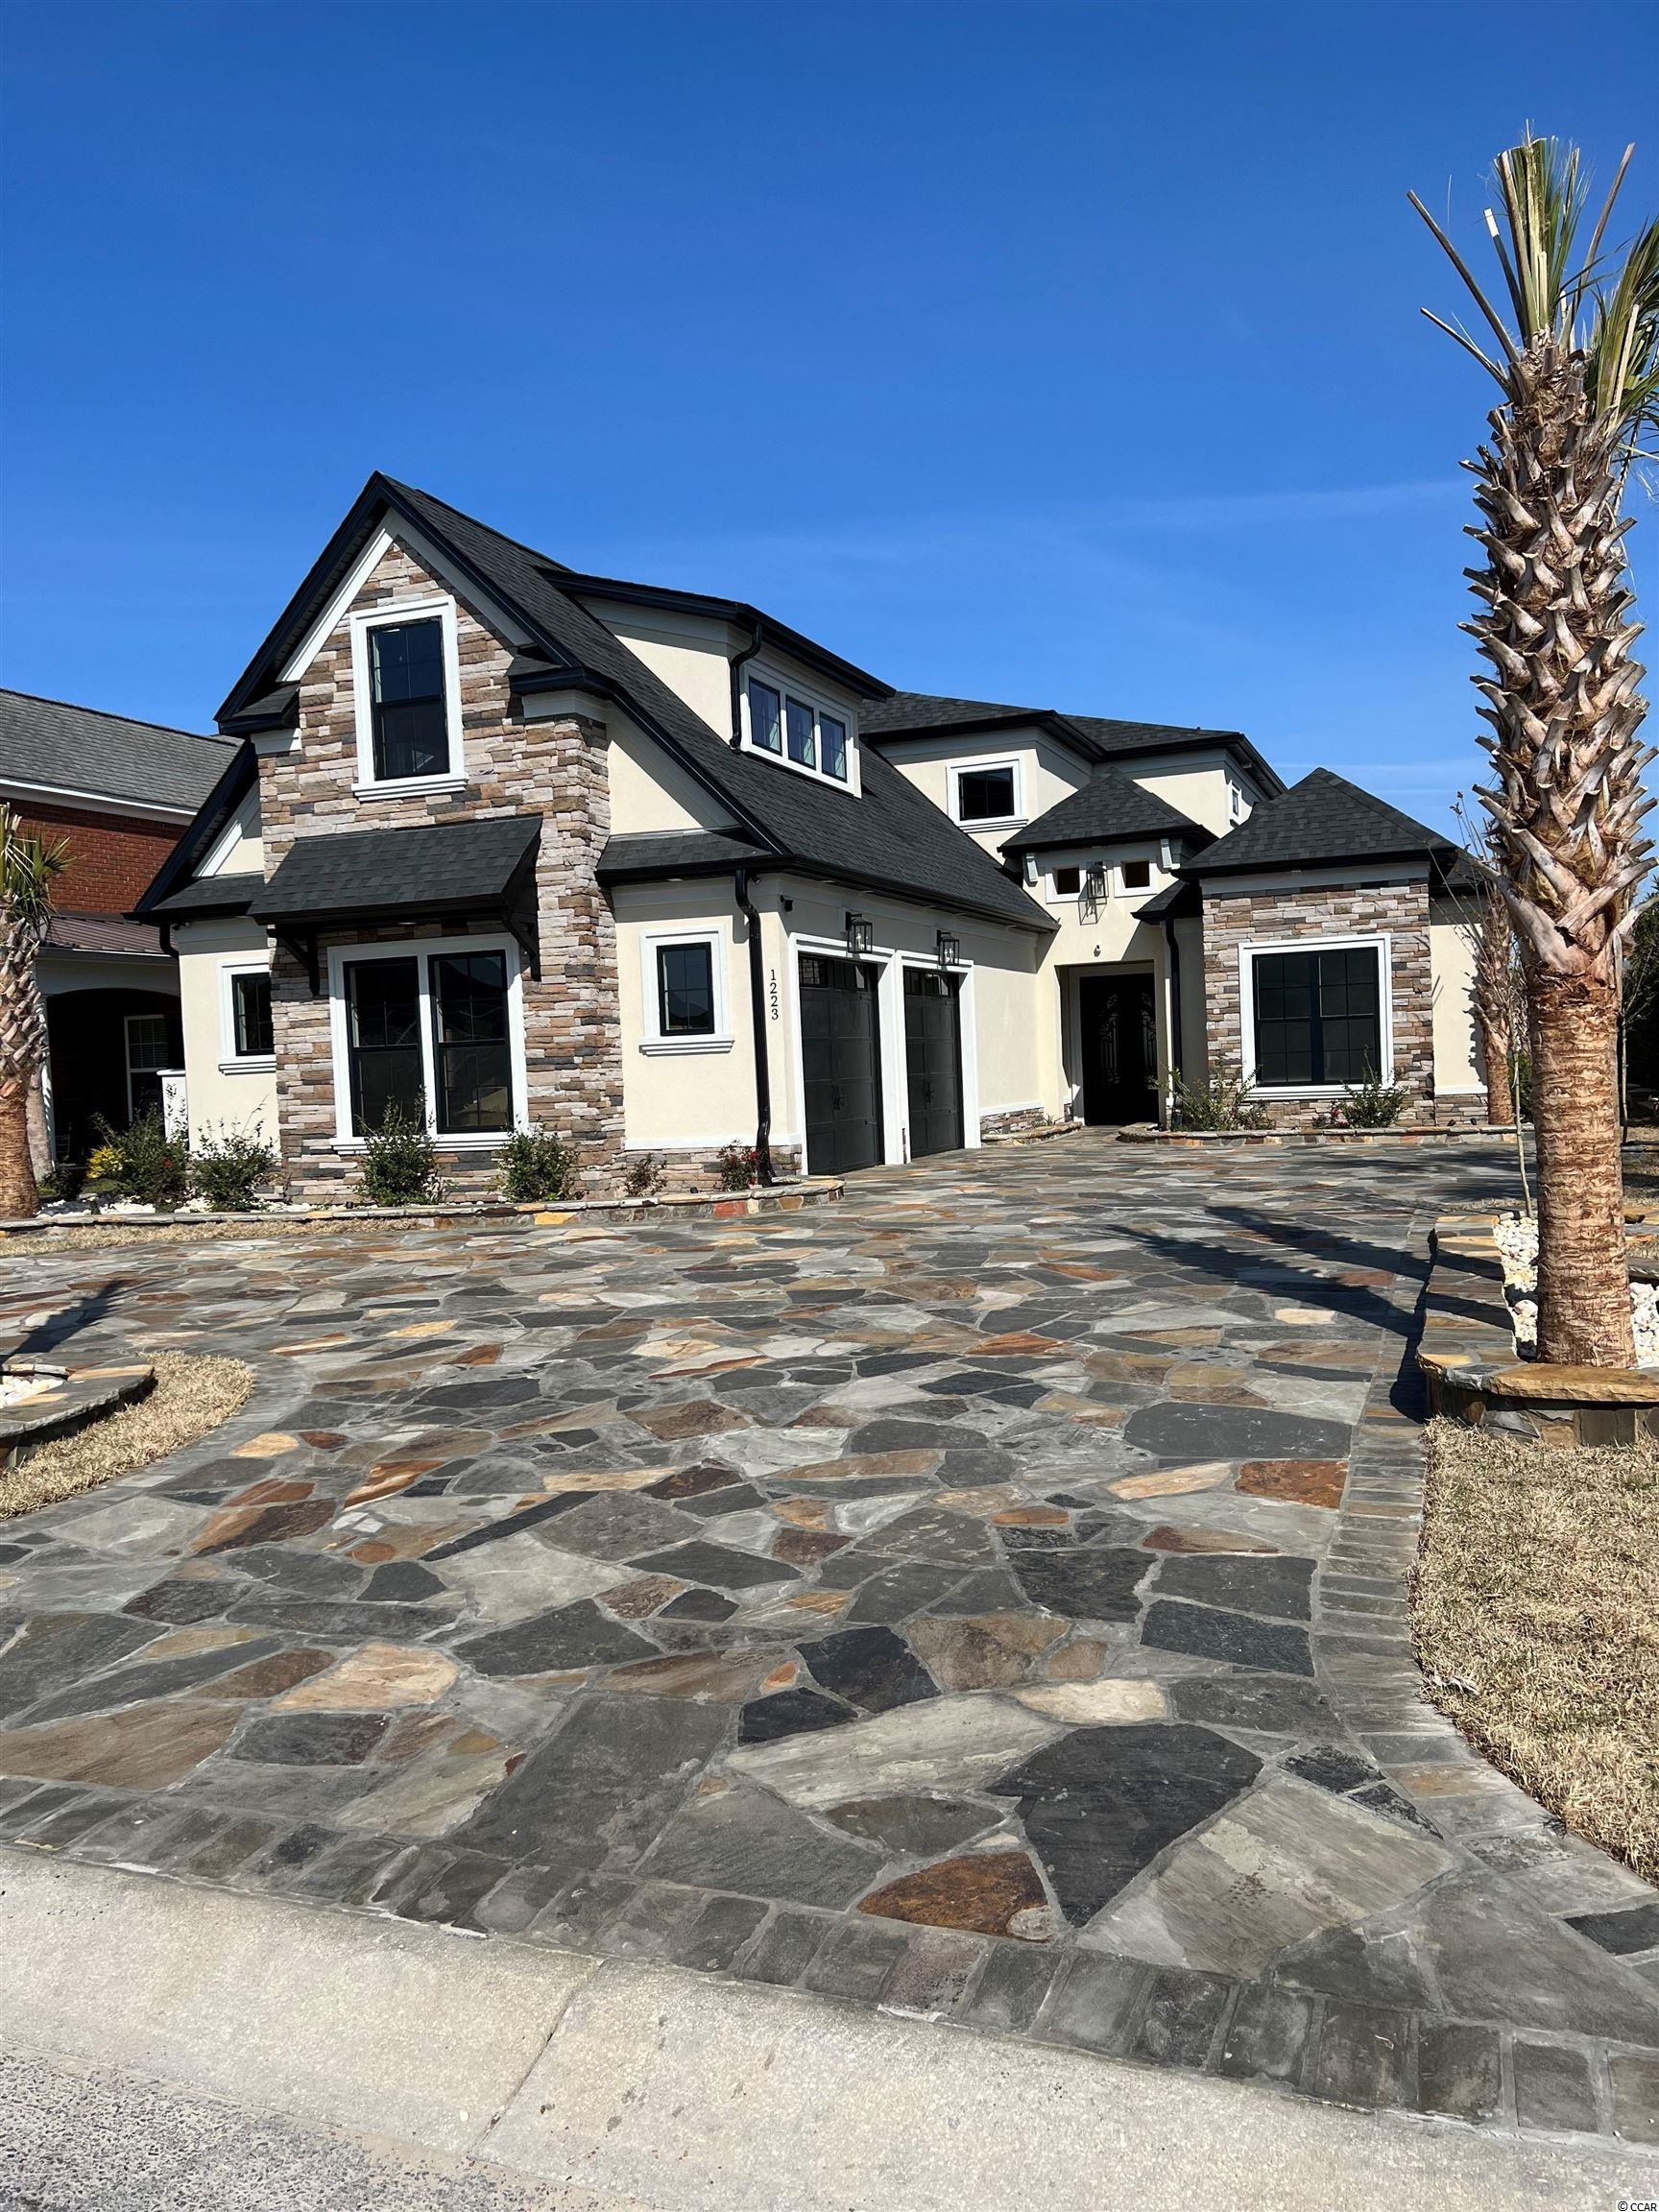 """This beautiful new construction home will be completed in early 2022! Located in the highly sought after Carolina Waterway Plantation that is a gated intra coastal waterway community with private boat storage and boat launch access. If you are looking for a 100% custom home with quality upgrades and finishes this is it. This home will be loaded with all of the upgrades would expect in this price range including LVP flooring throughout upgraded countertops, soft close all wood cabinets, all showers are tile including a large shower and tub in the master bathroom, custom wood shelving in your oversized master walk in closet, large tray ceilings, appliances credit will be given, crown molding and upgraded lighting package. Carolina Waterway is located conveniently near Hwy 501 and Hwy 31 for quick easy access to all of Myrtle Beach and surrounding areas have to offer. Buyers if purchase in time will be given choices for certain finishes. Book your showing today as you will not be disappointed! Beautiful large lot with pond/fountain views! Lot is large enough for a POOL and will come with an outdoor BBQ area.  """"MAIN PICTURE IS A VERY SIMILAR HOME UNDER CONSTRUCTION IN THE COMMUNITY BY THE BUILDER"""""""